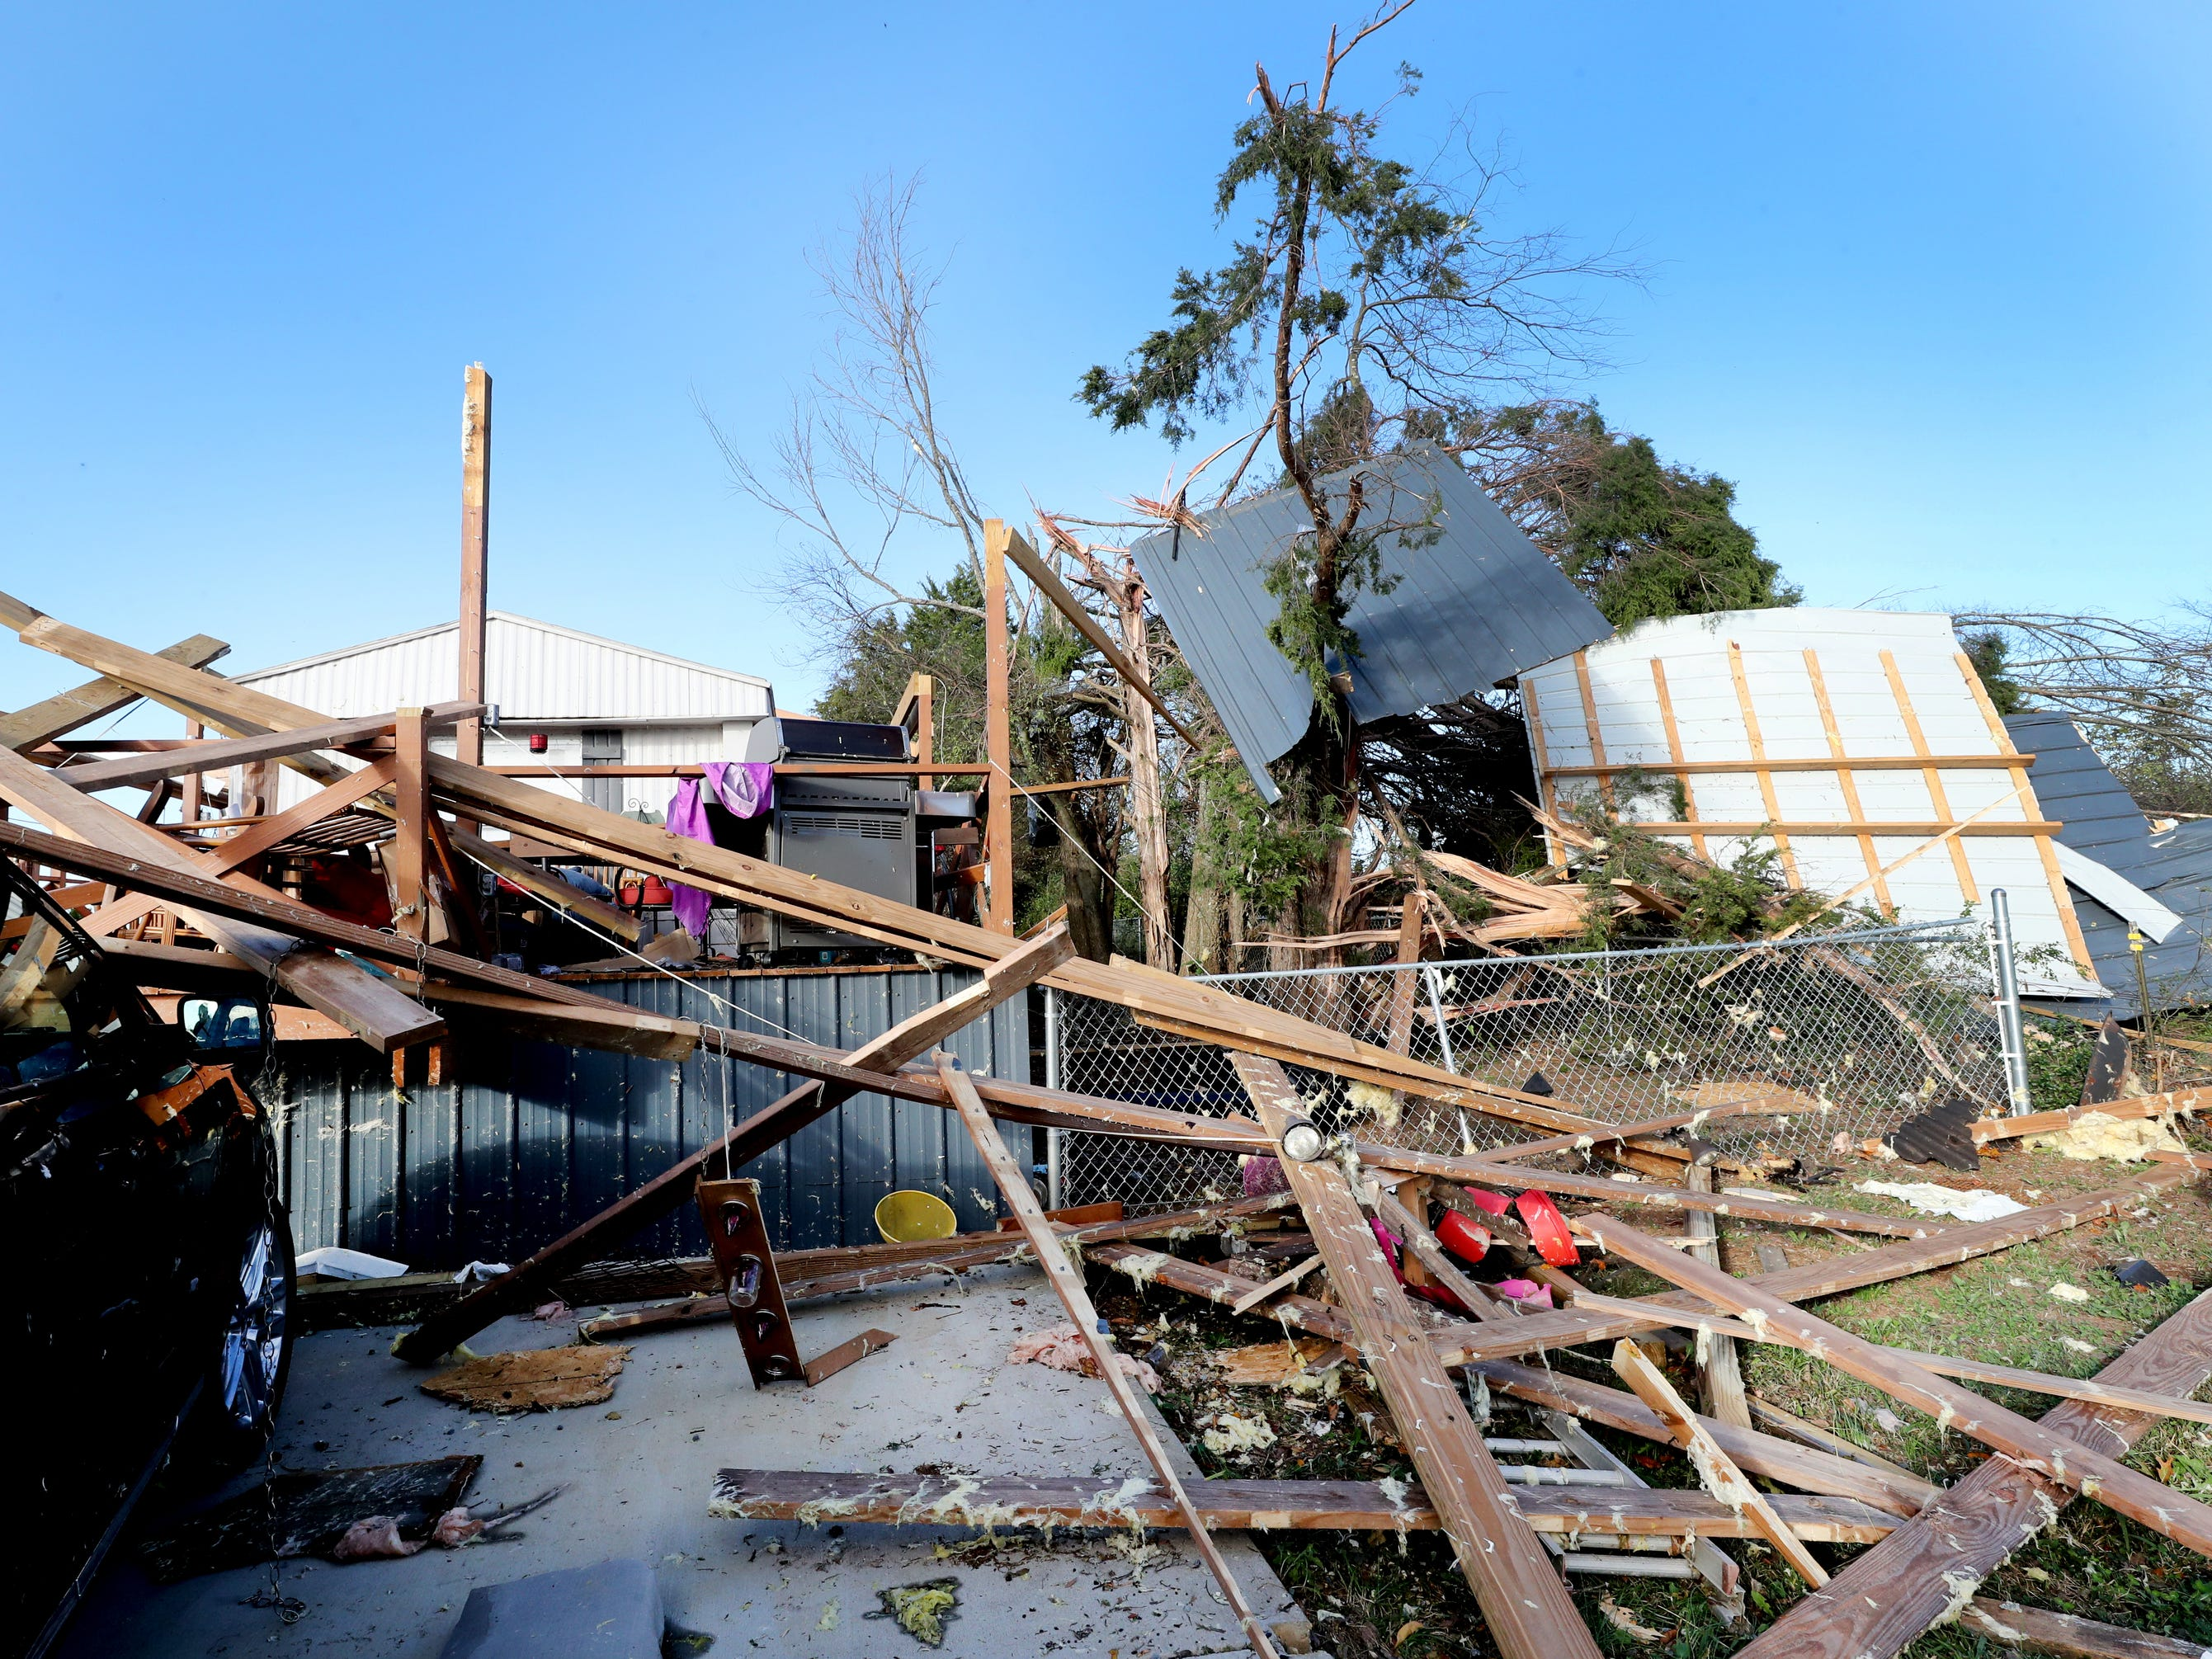 Tornado damage on the property of Hank and Ava Jordan that hit the area along Rock Springs Midland Road in Christiana, Tenn. early in the morning, on Tuesday, Nov. 6, 2018.